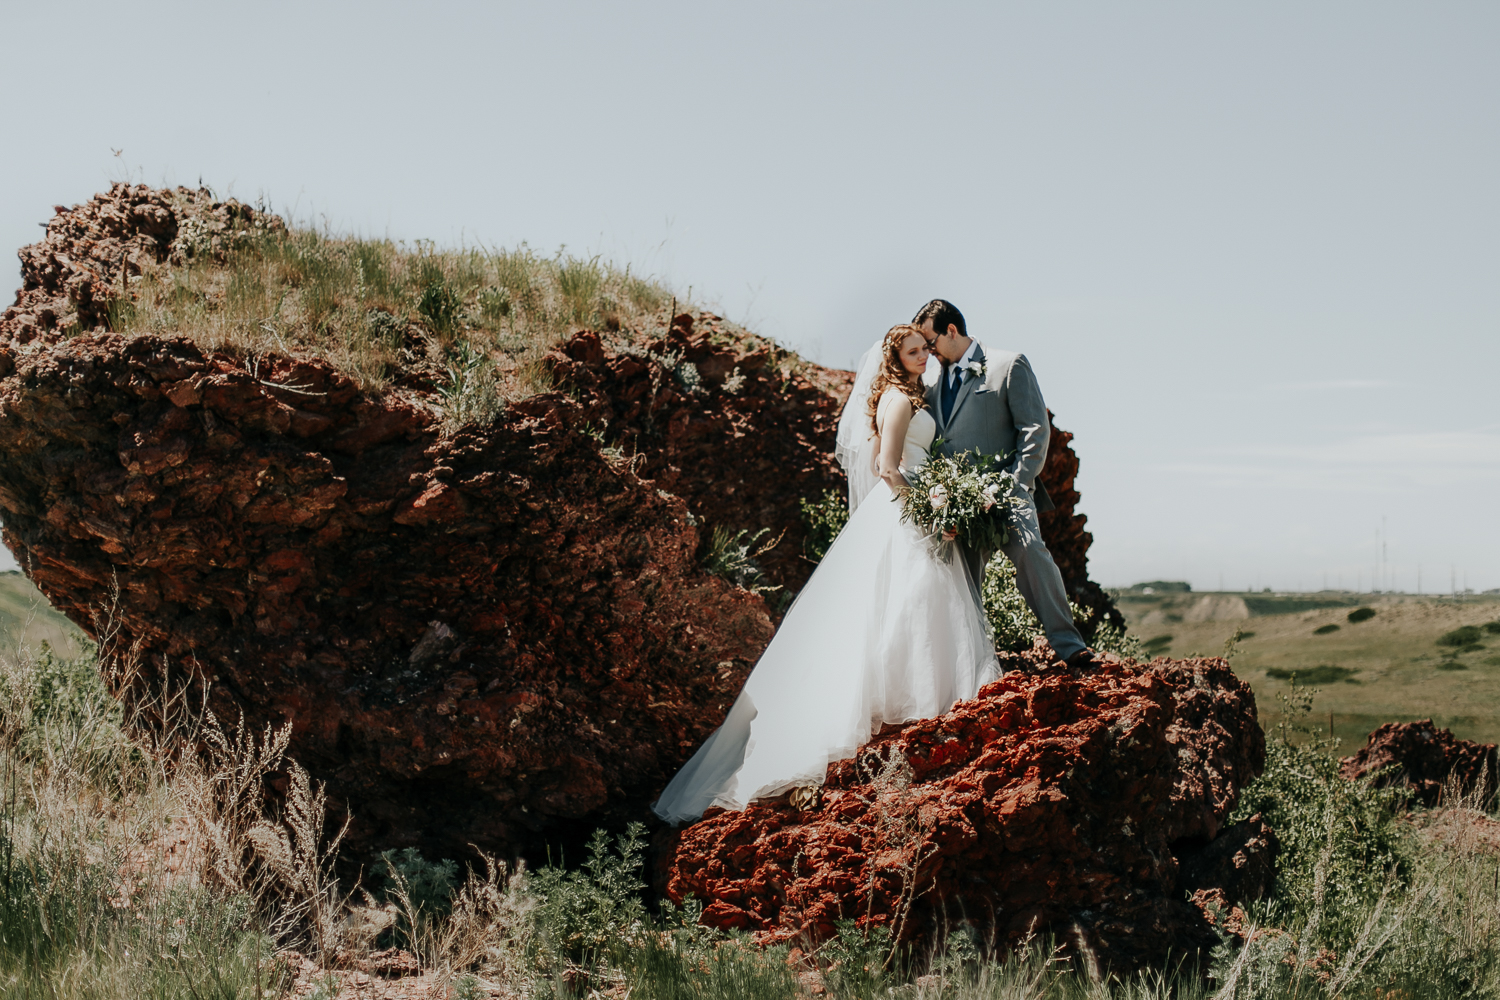 lethbridge-wedding-photographer-love-and-be-loved-photography-dan-tynnea-picture-image-photo-81.jpg